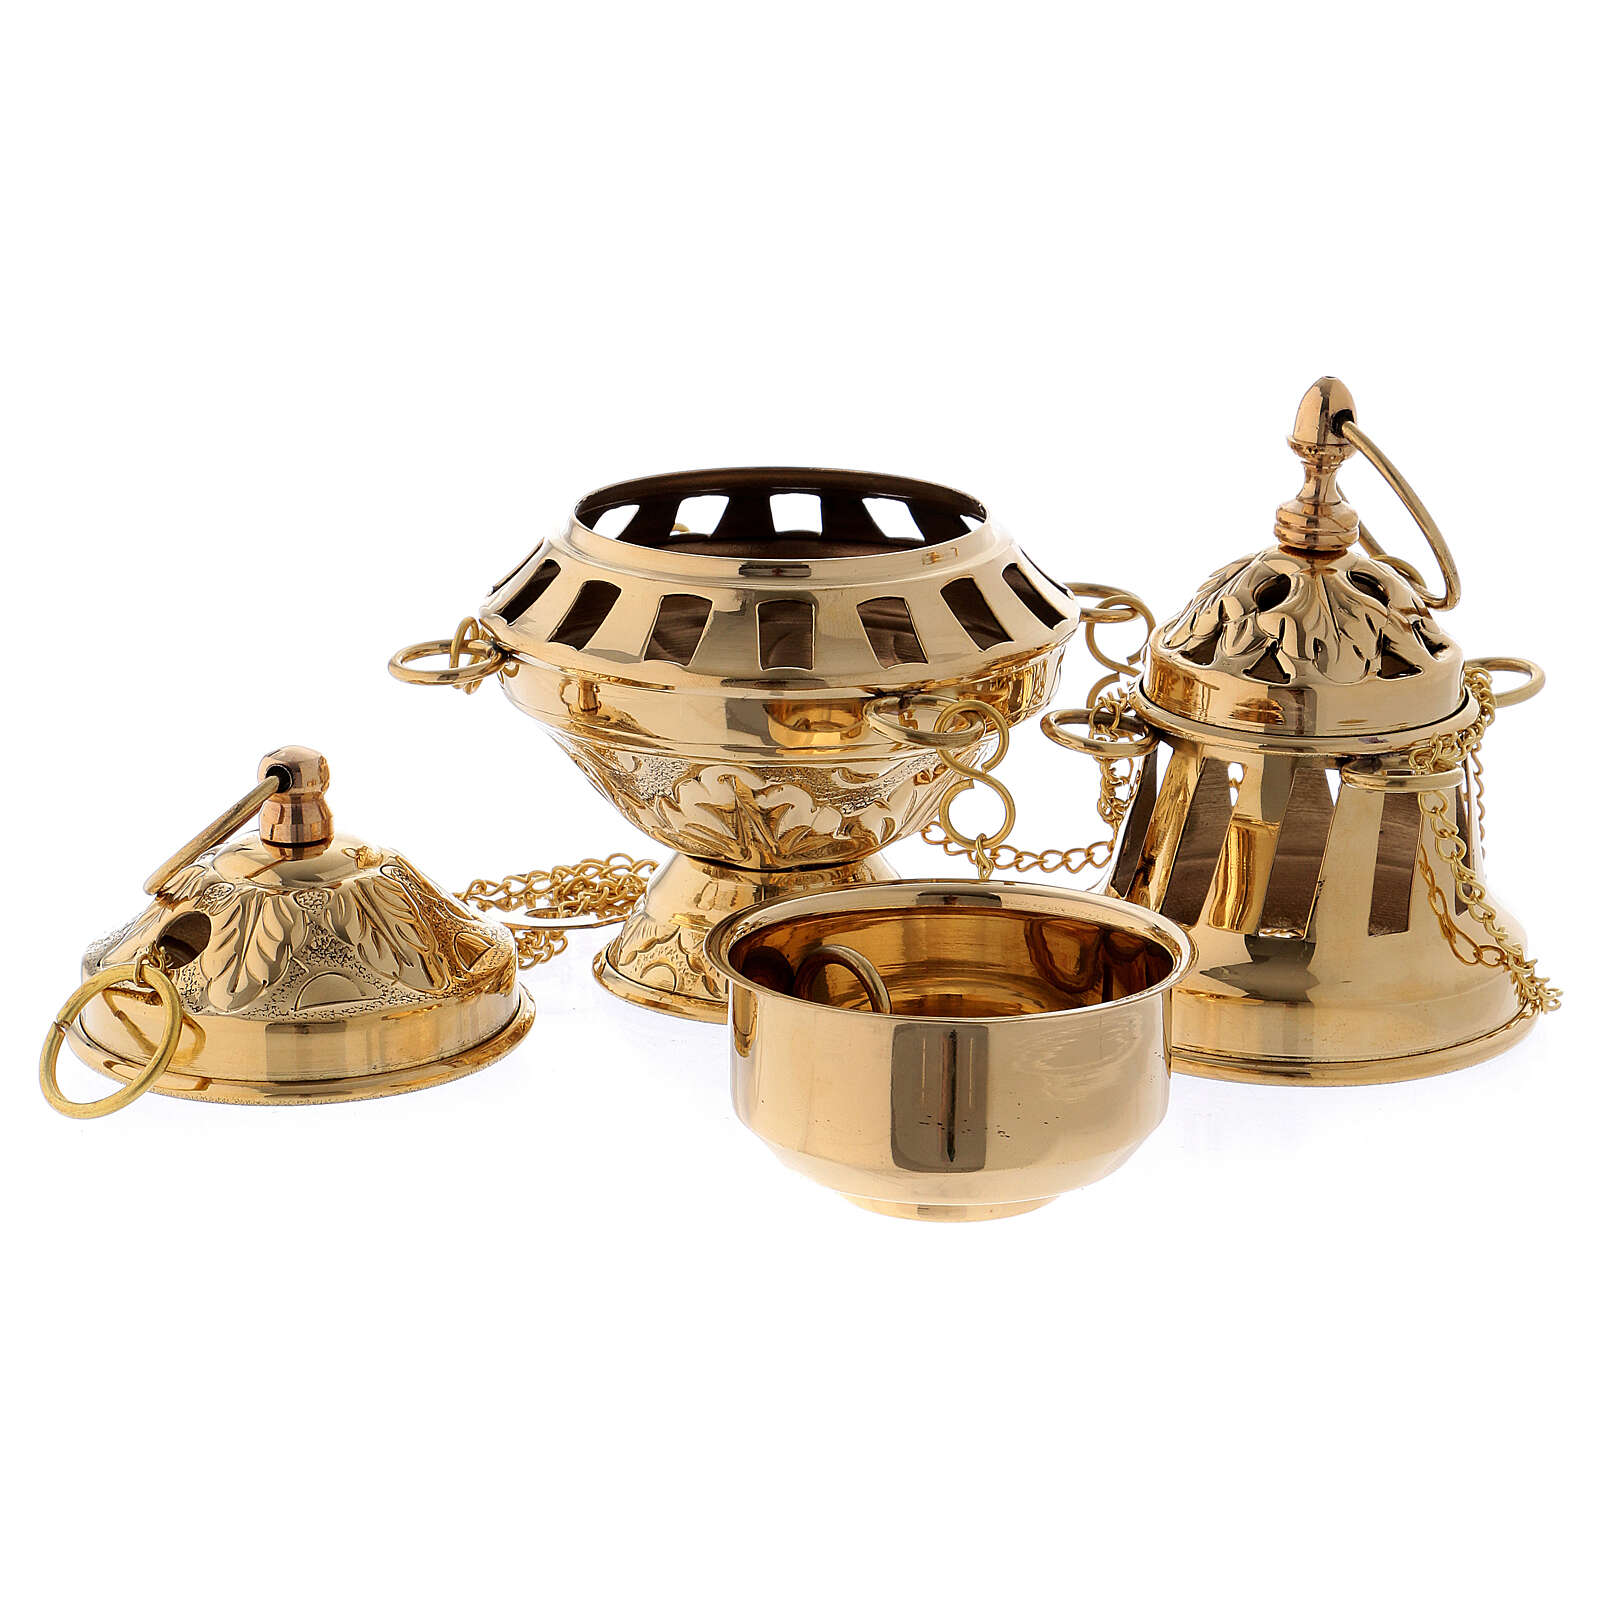 Polished gold plated brass thurible 6 1/4 in 3